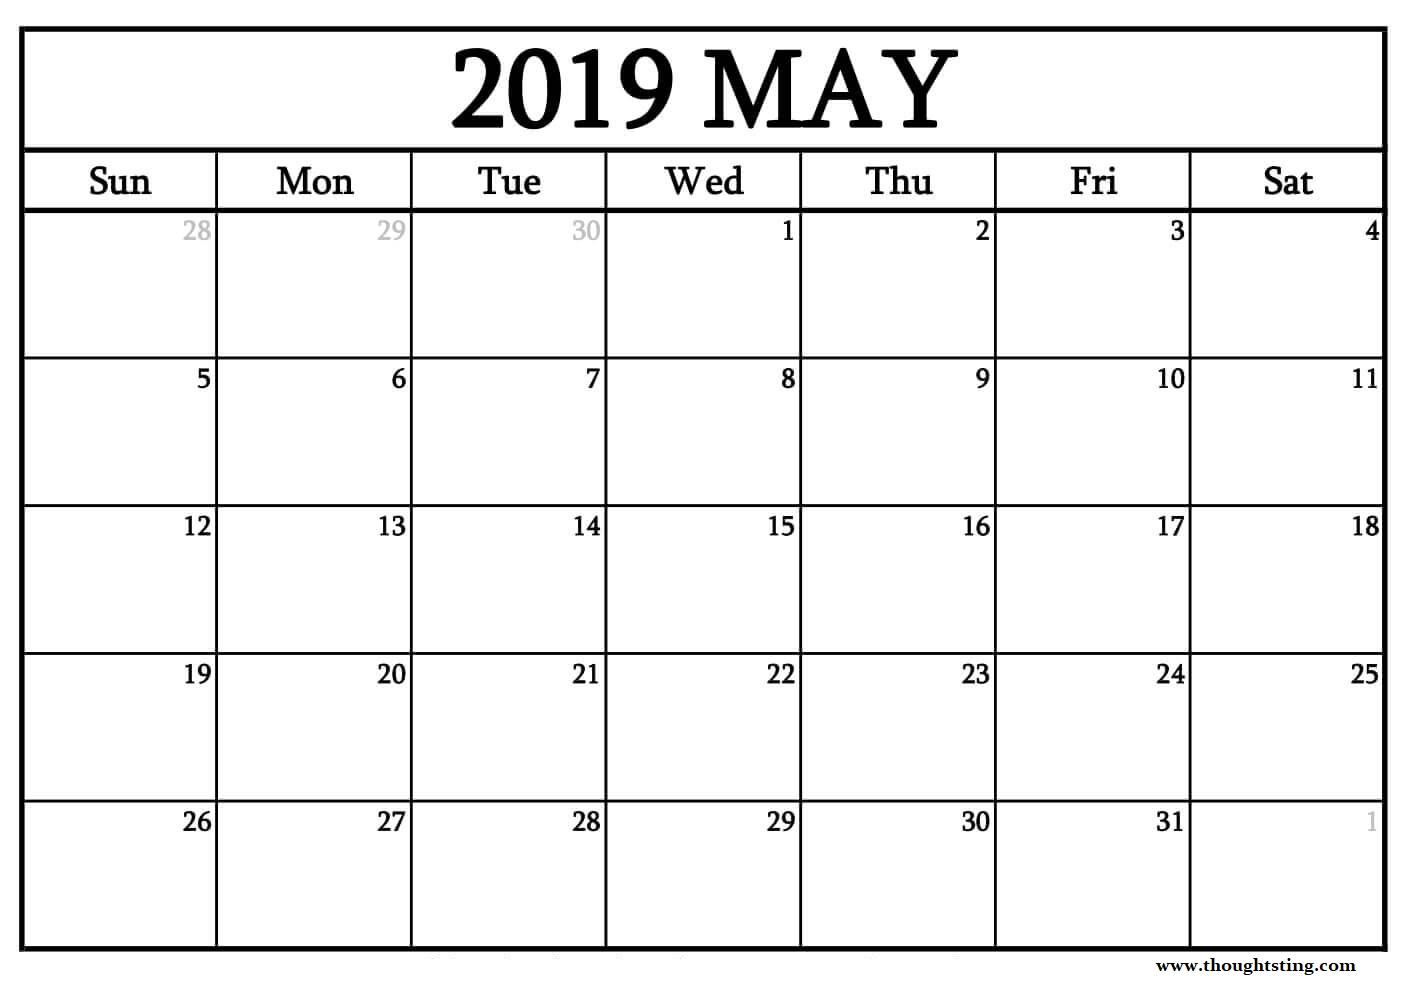 Editable May 2019 Calendar Printable Template With Holidays